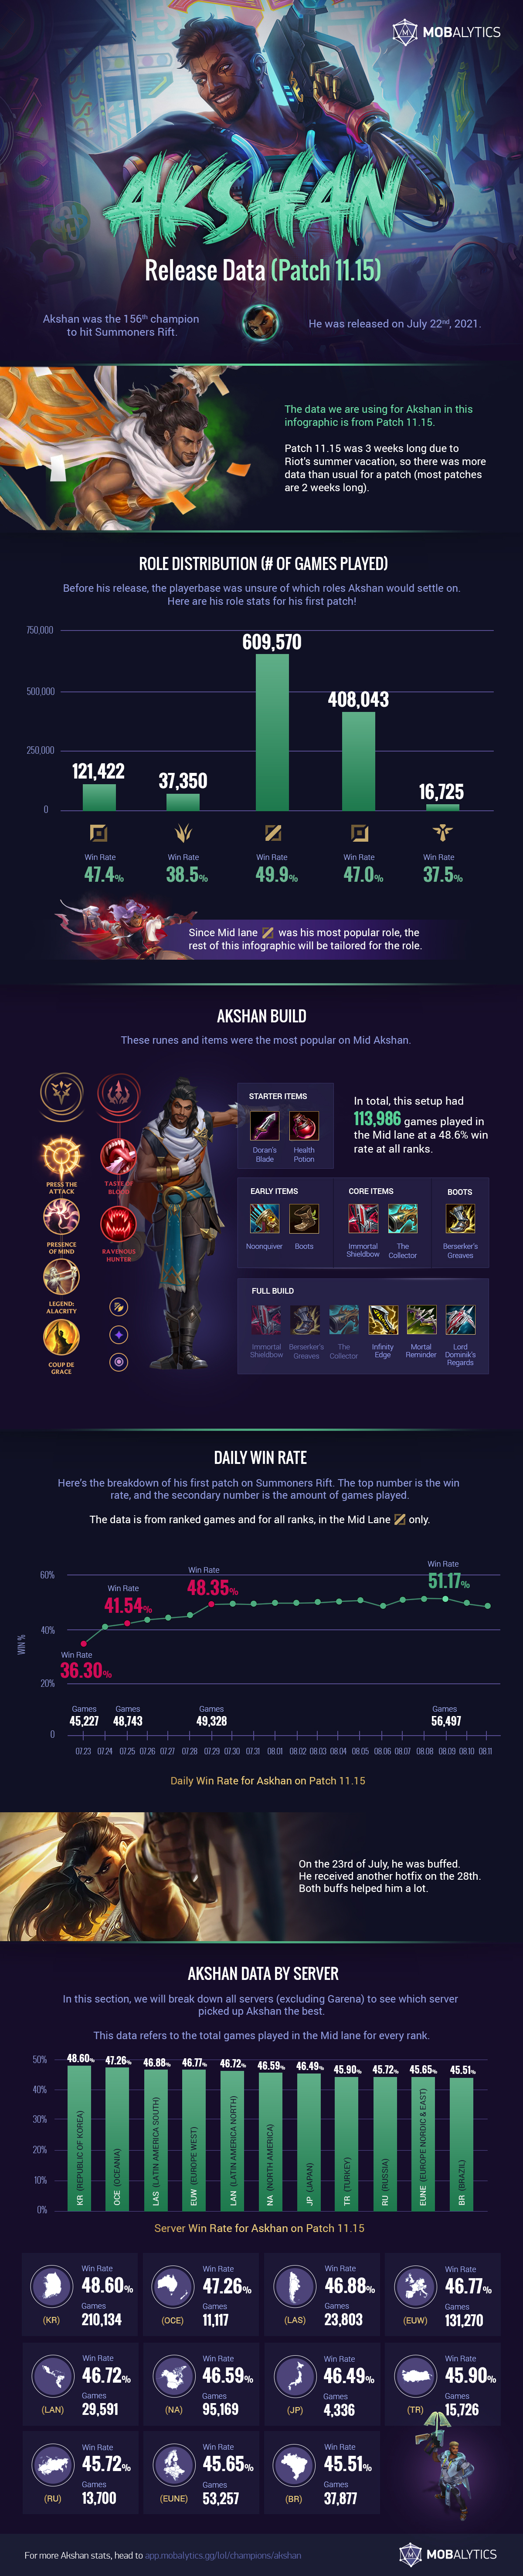 Akshan Release Data (Patch 11.15) – Infographic